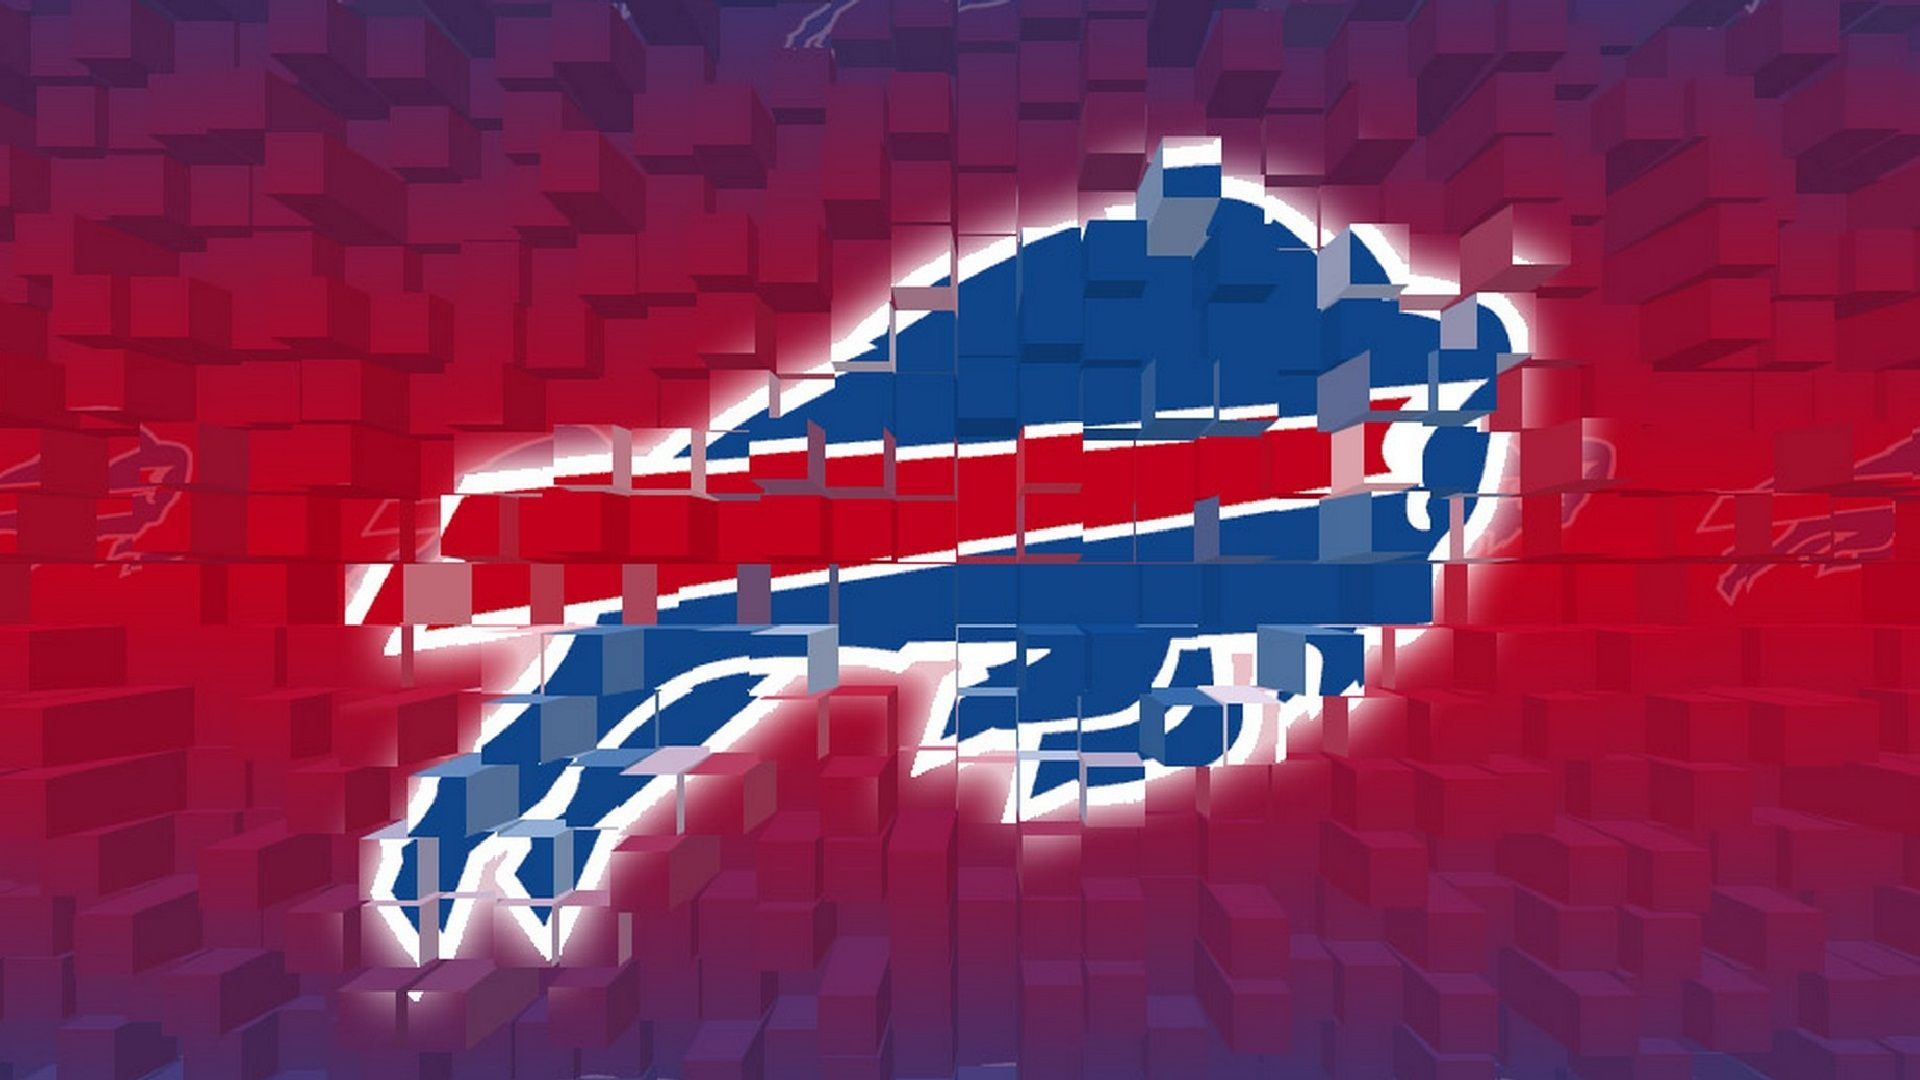 HD Buffalo Bills Backgrounds Wallpapers Football wallpaper 1920x1080